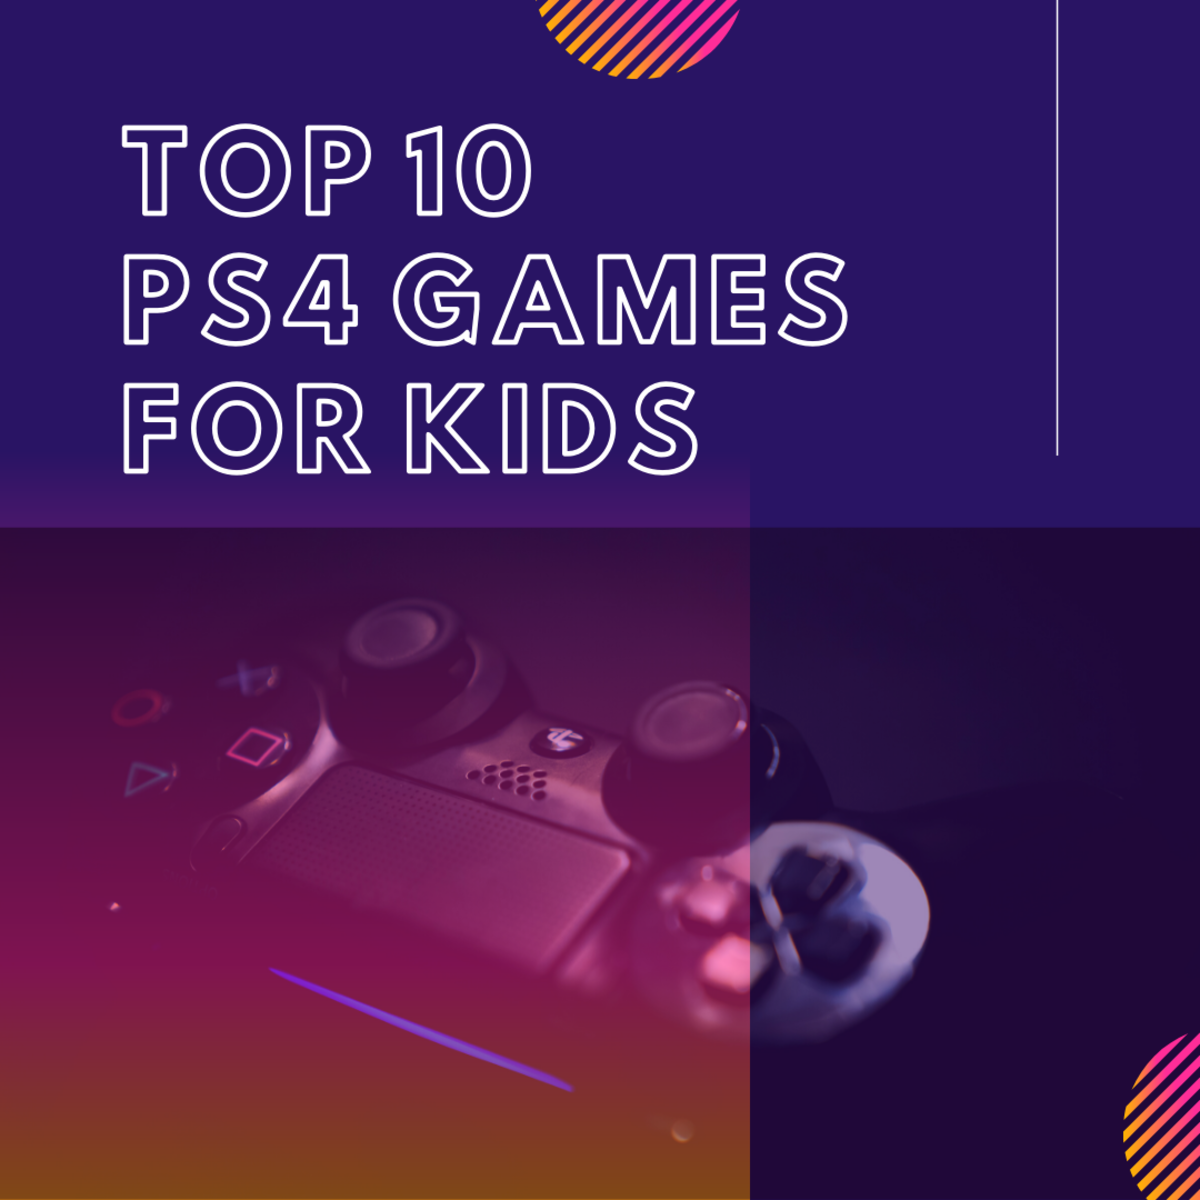 Top 10 Best PS4 Games for Kids